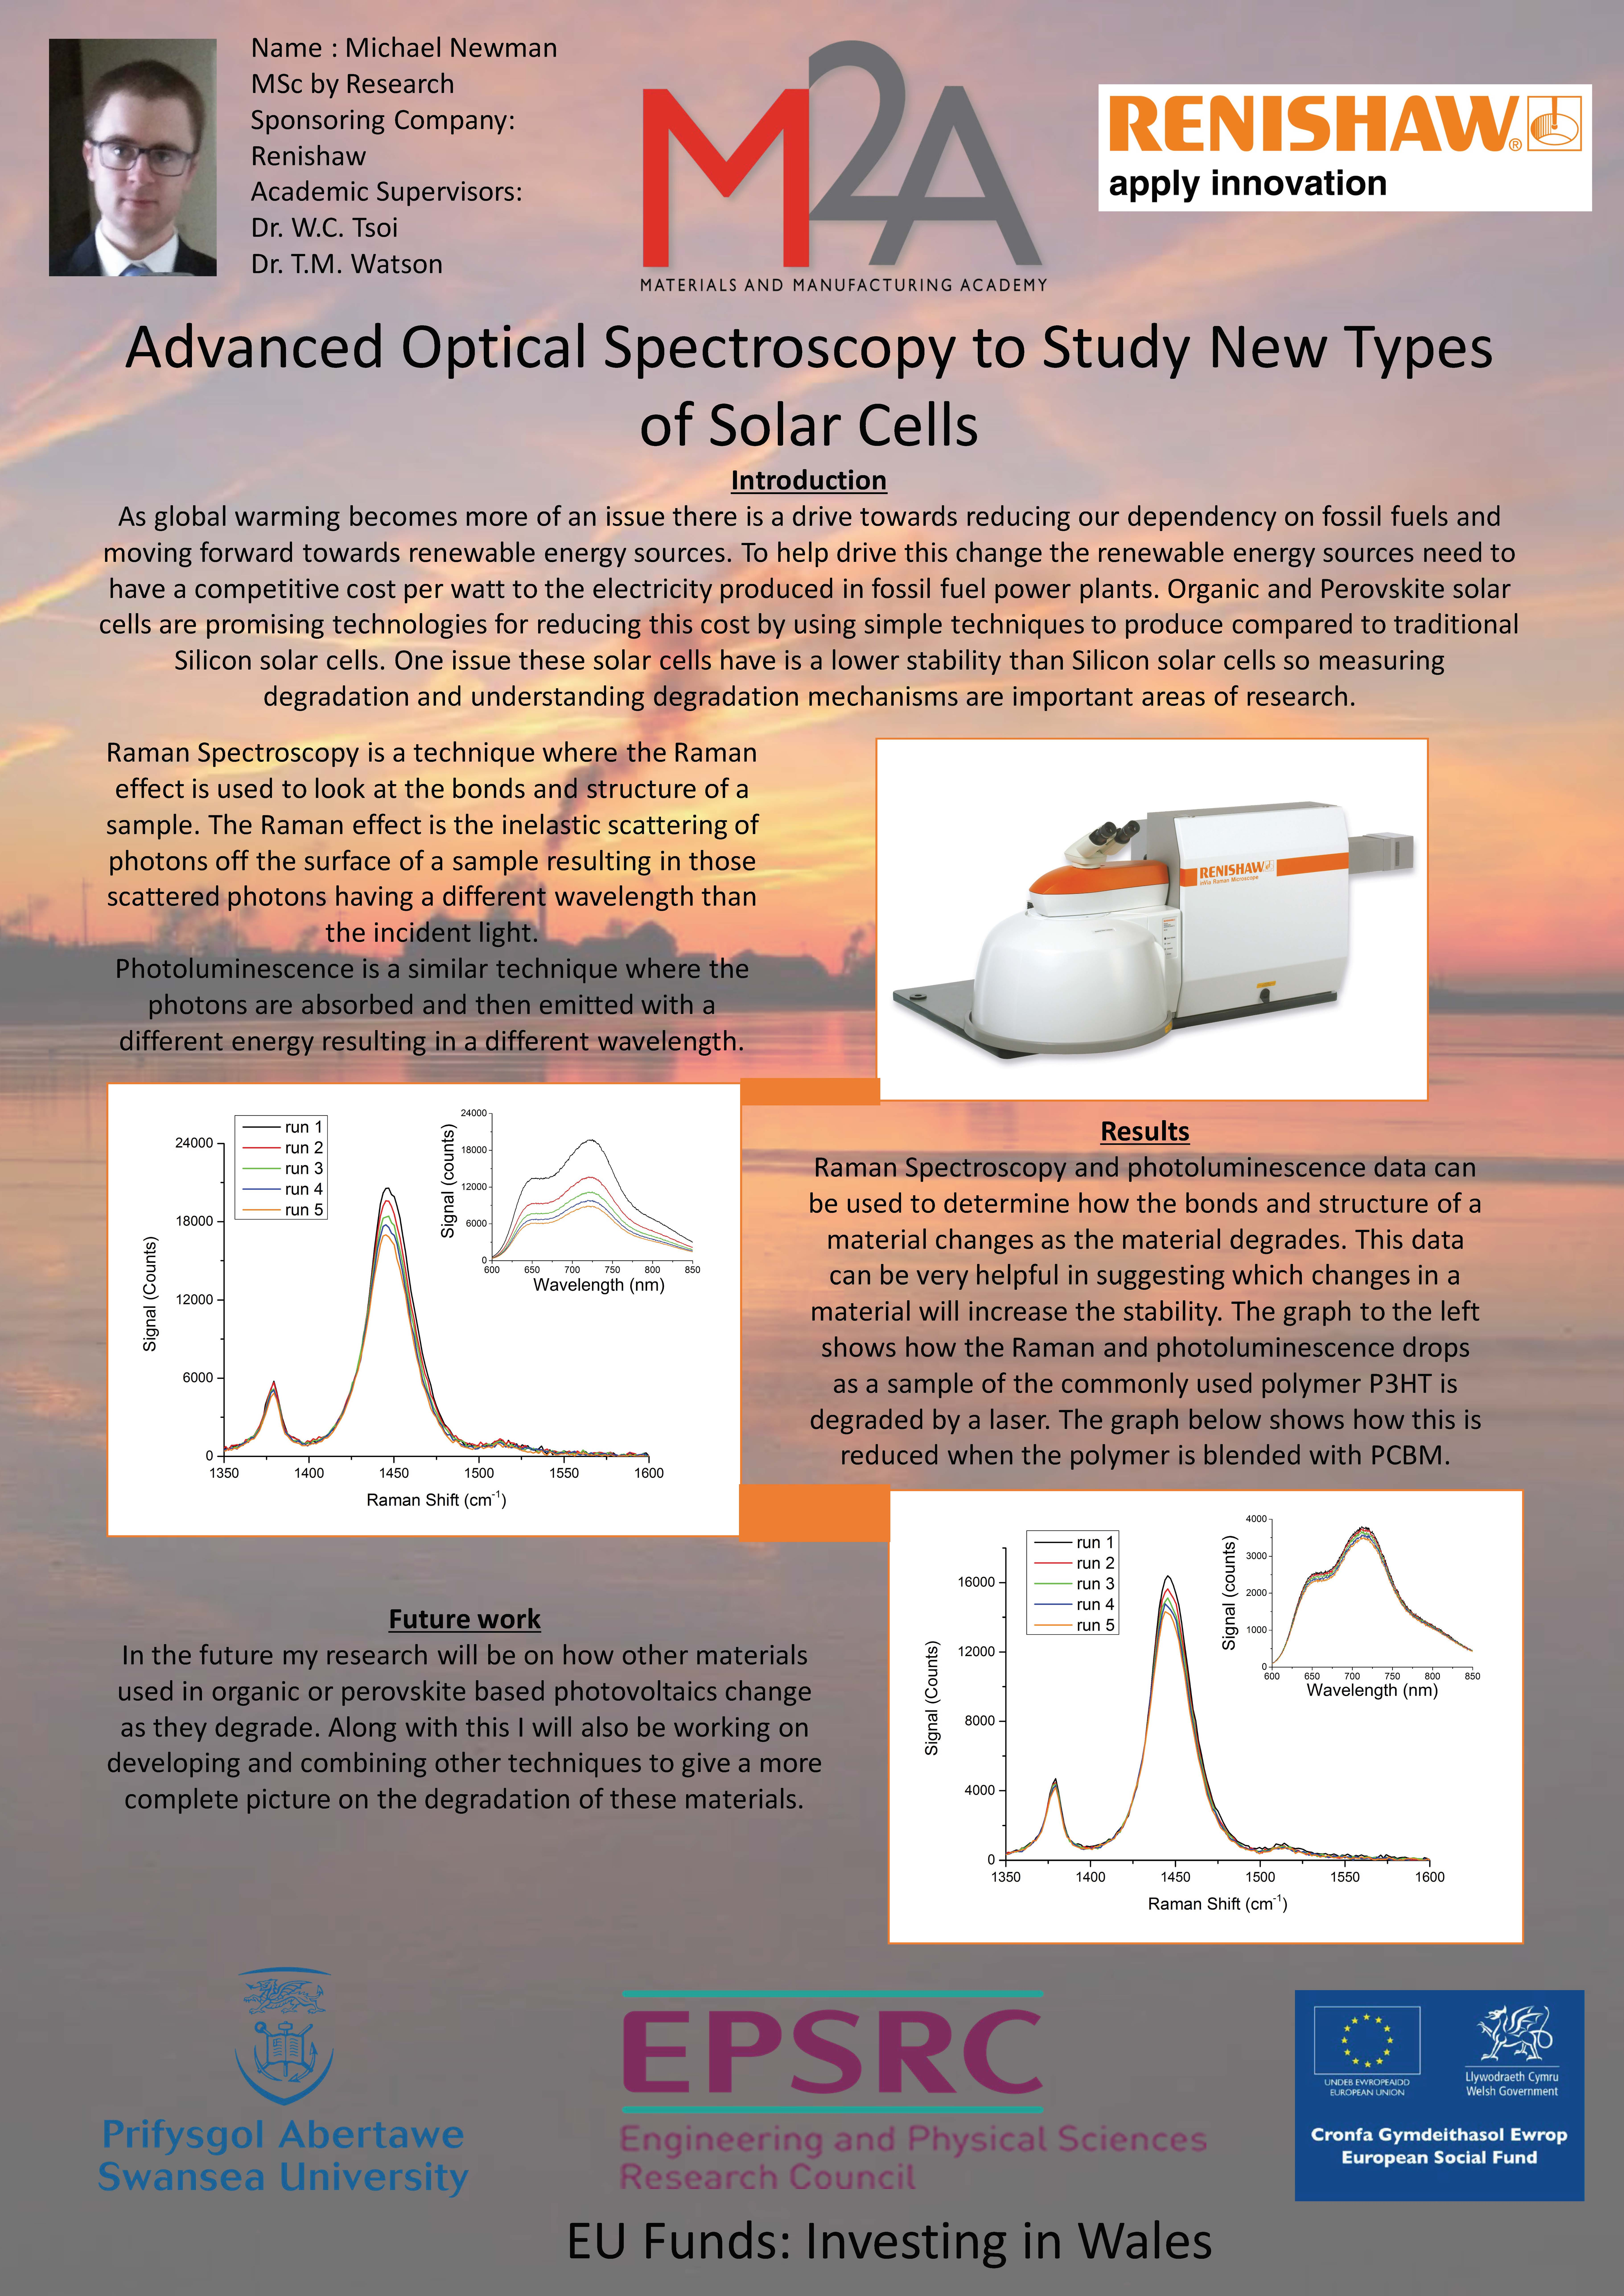 Advanced Optical Spectroscopy to Study New Types of Solar Cells